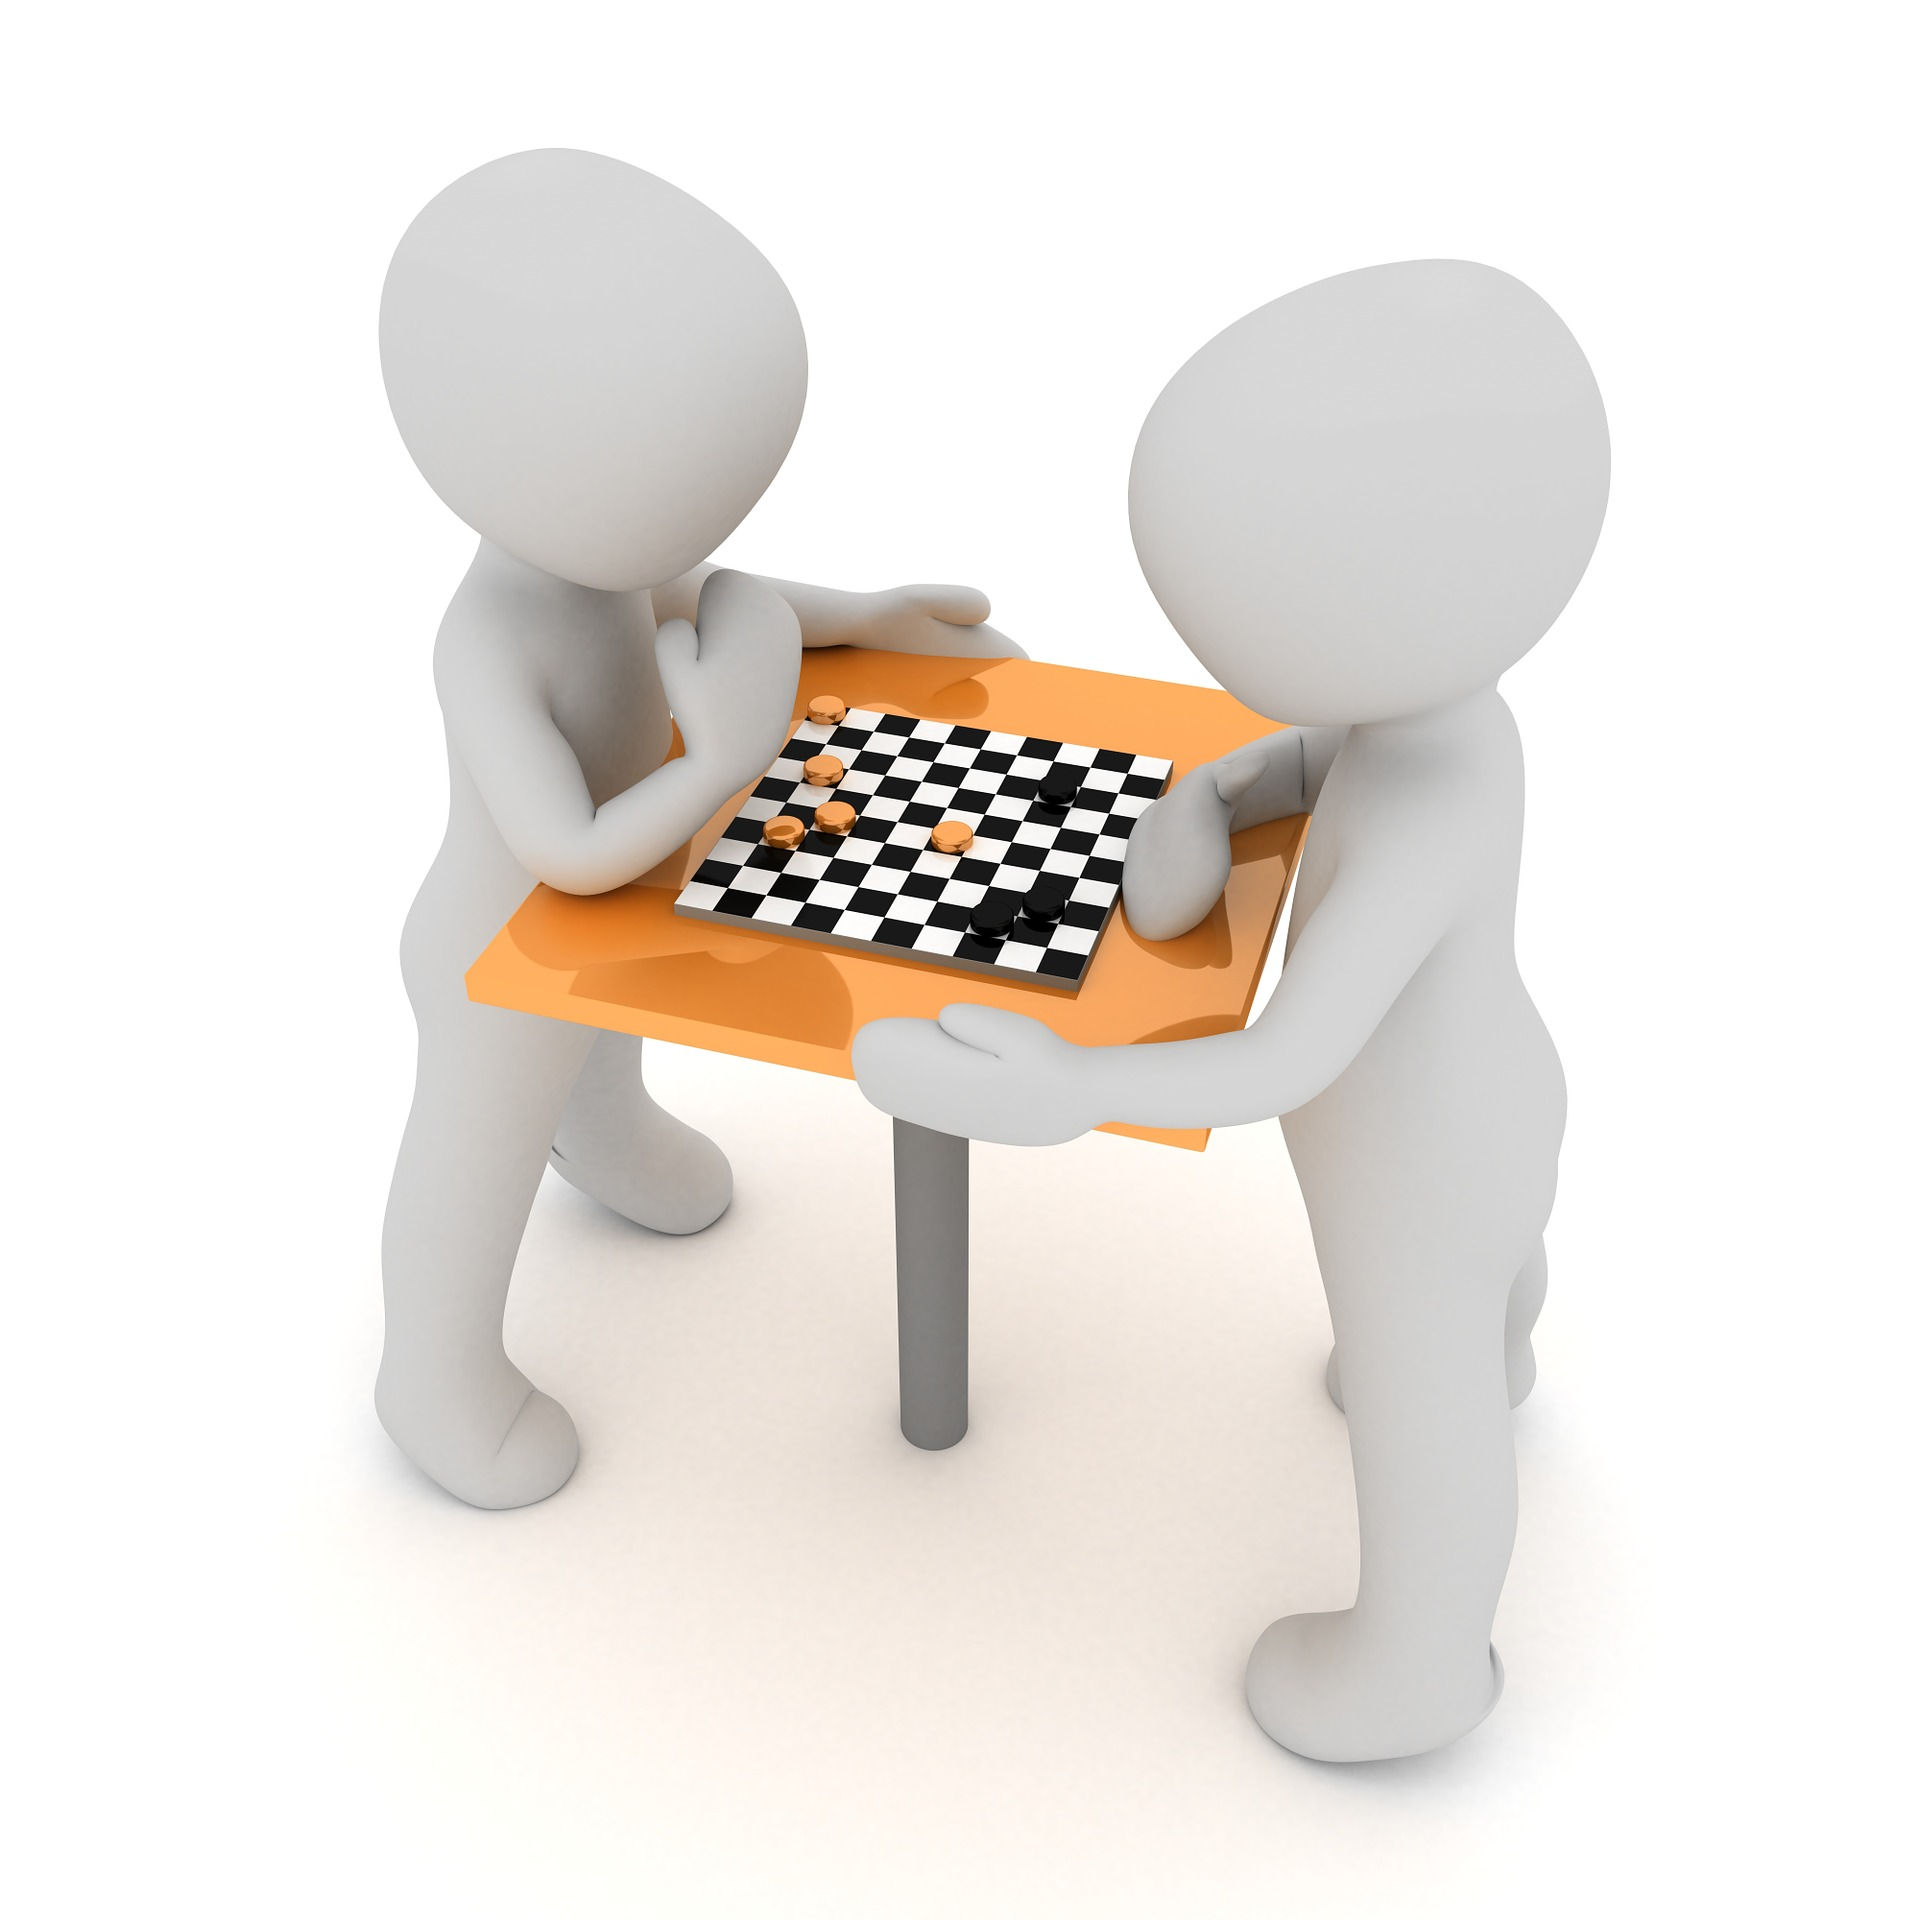 Basic Features Of Chess